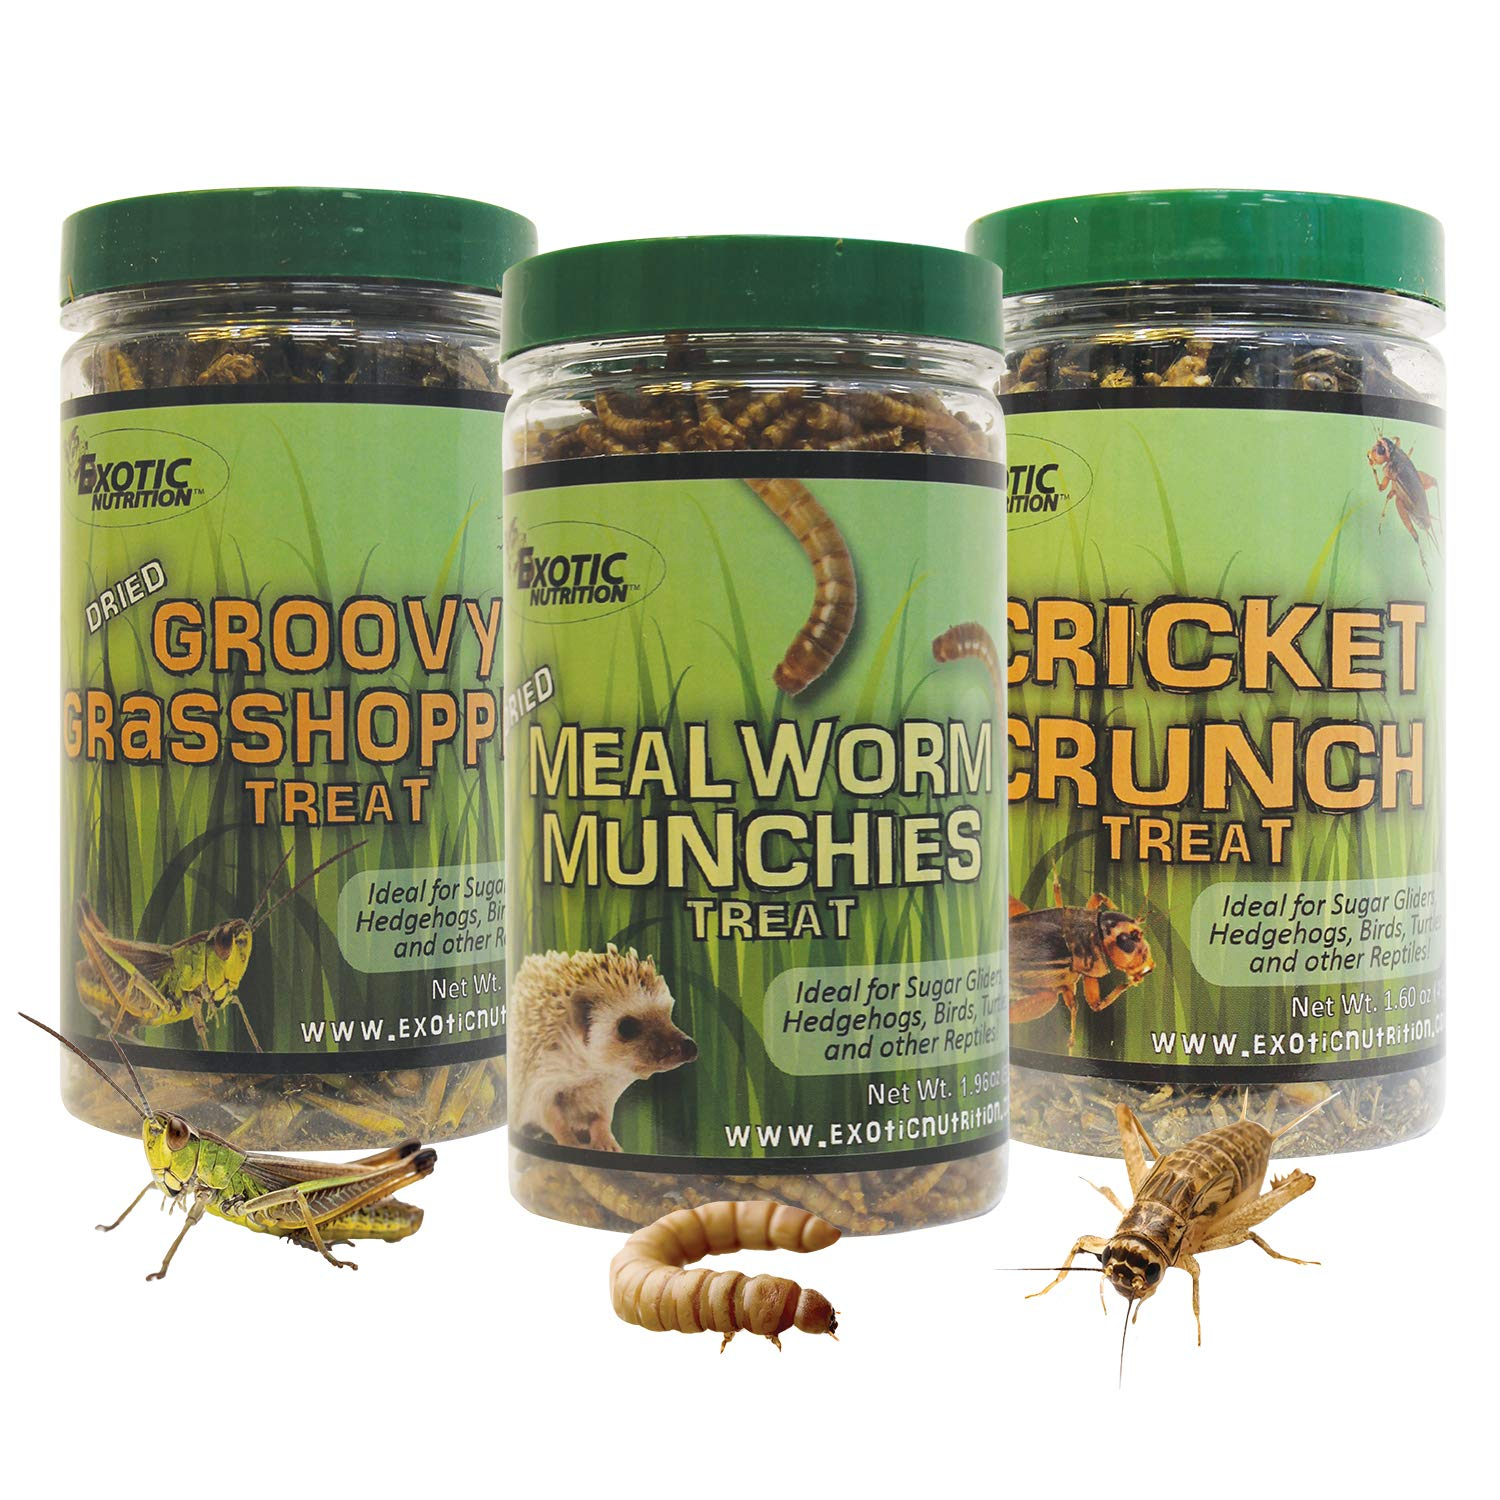 Exotic Nutrition Dried Insect 3 Pack - Crickets, Grasshoppers, Mealworms - for Sugar Gliders, Hedgehogs, Wild Birds, Chickens, Turtles, Tropical Fish, Reptiles by Exotic Nutrition